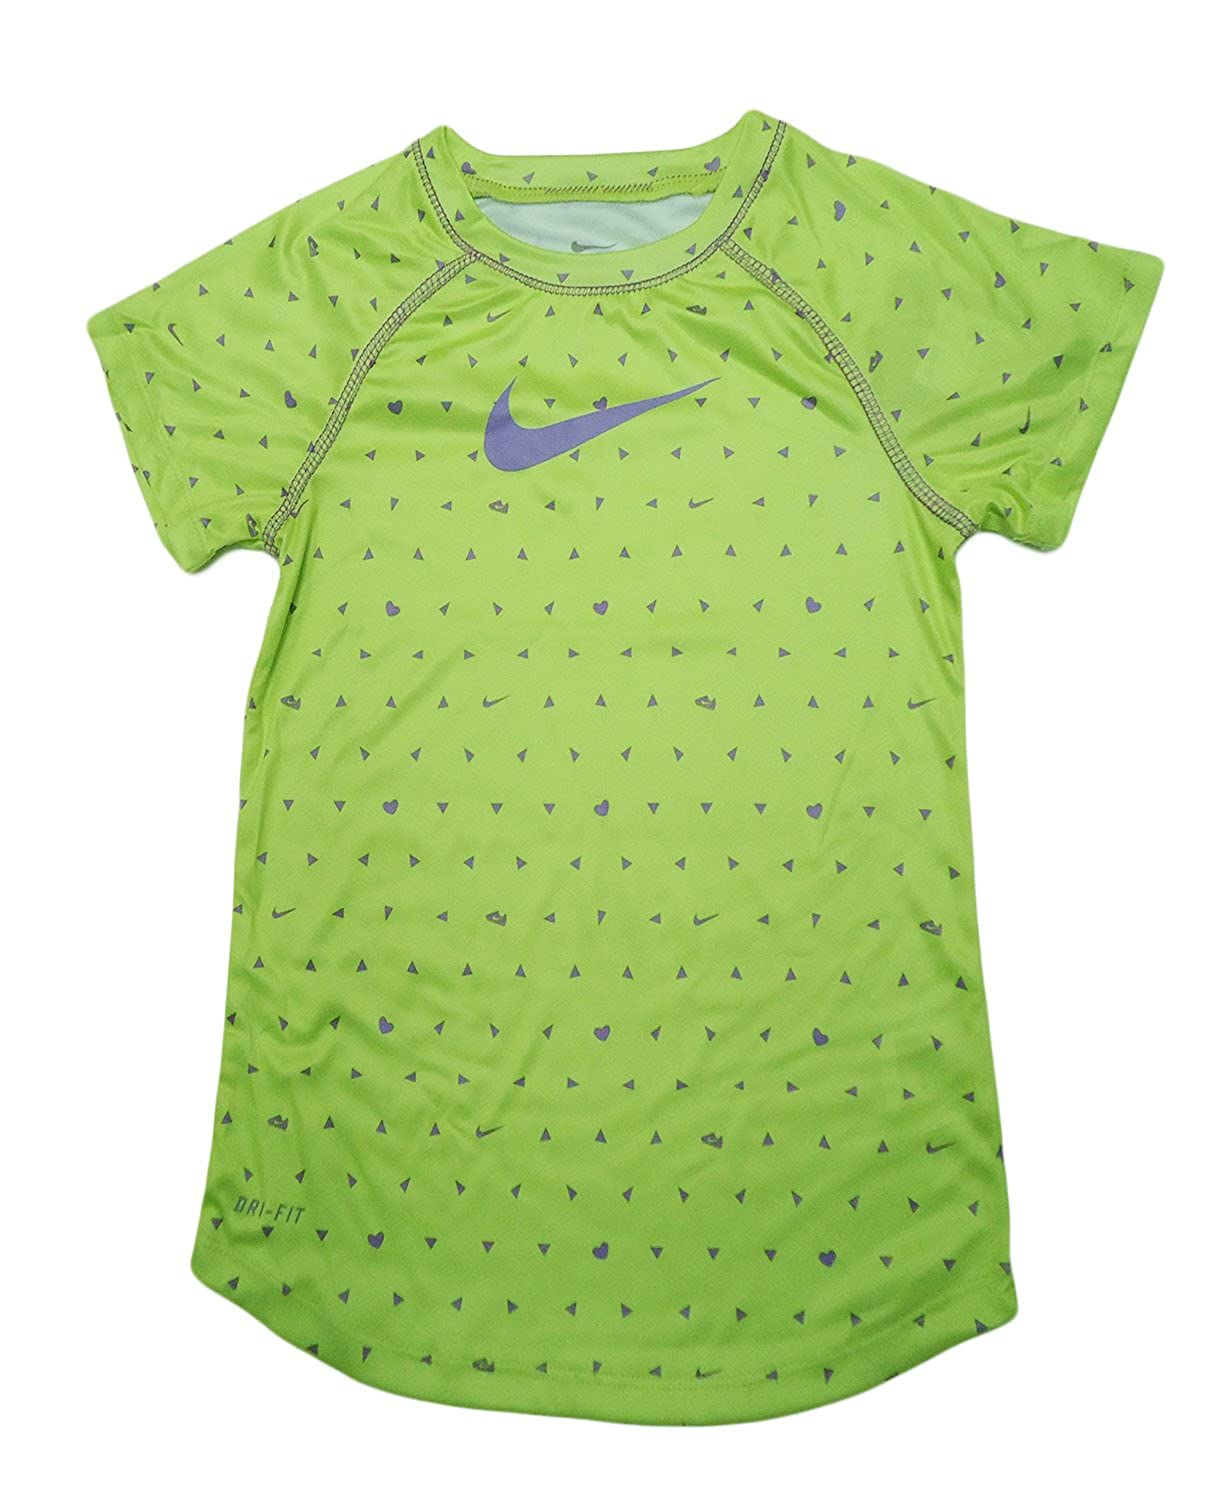 674c6c5ac50e AIr Nike Toddlers  Dri Fit Jersey T-Shirt  5WefJ0507889  -  25.99